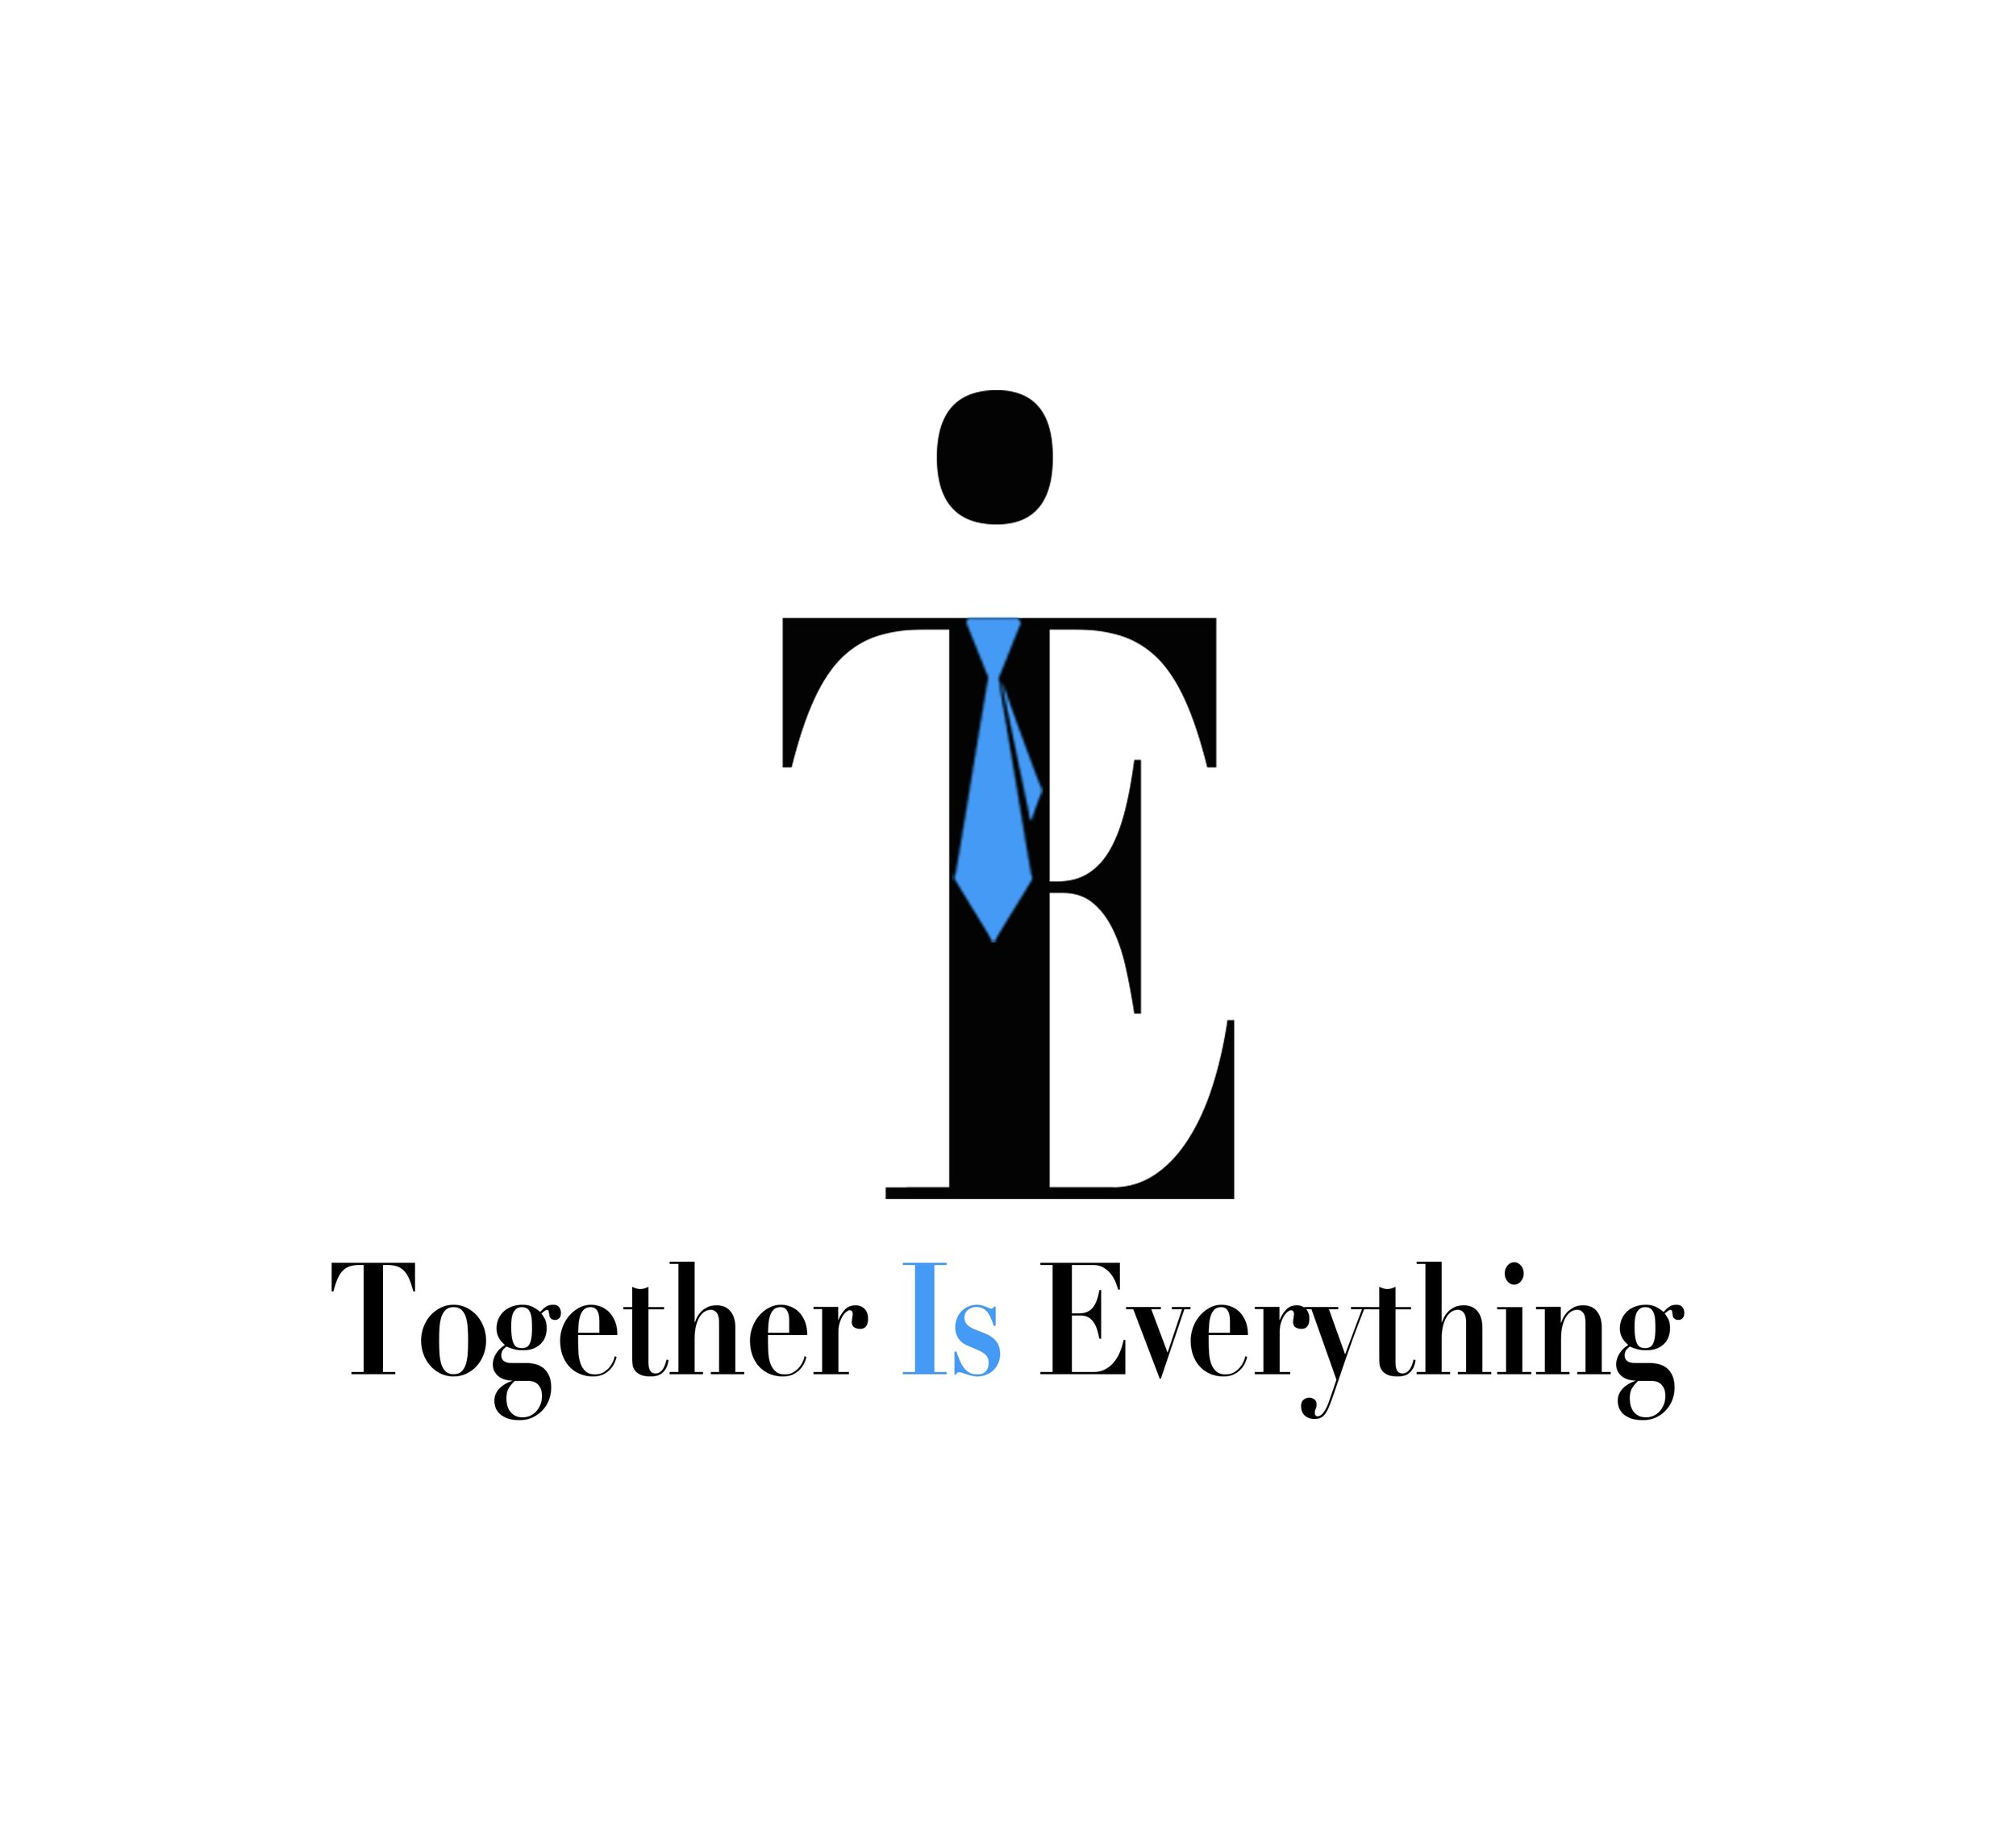 Together is Everything